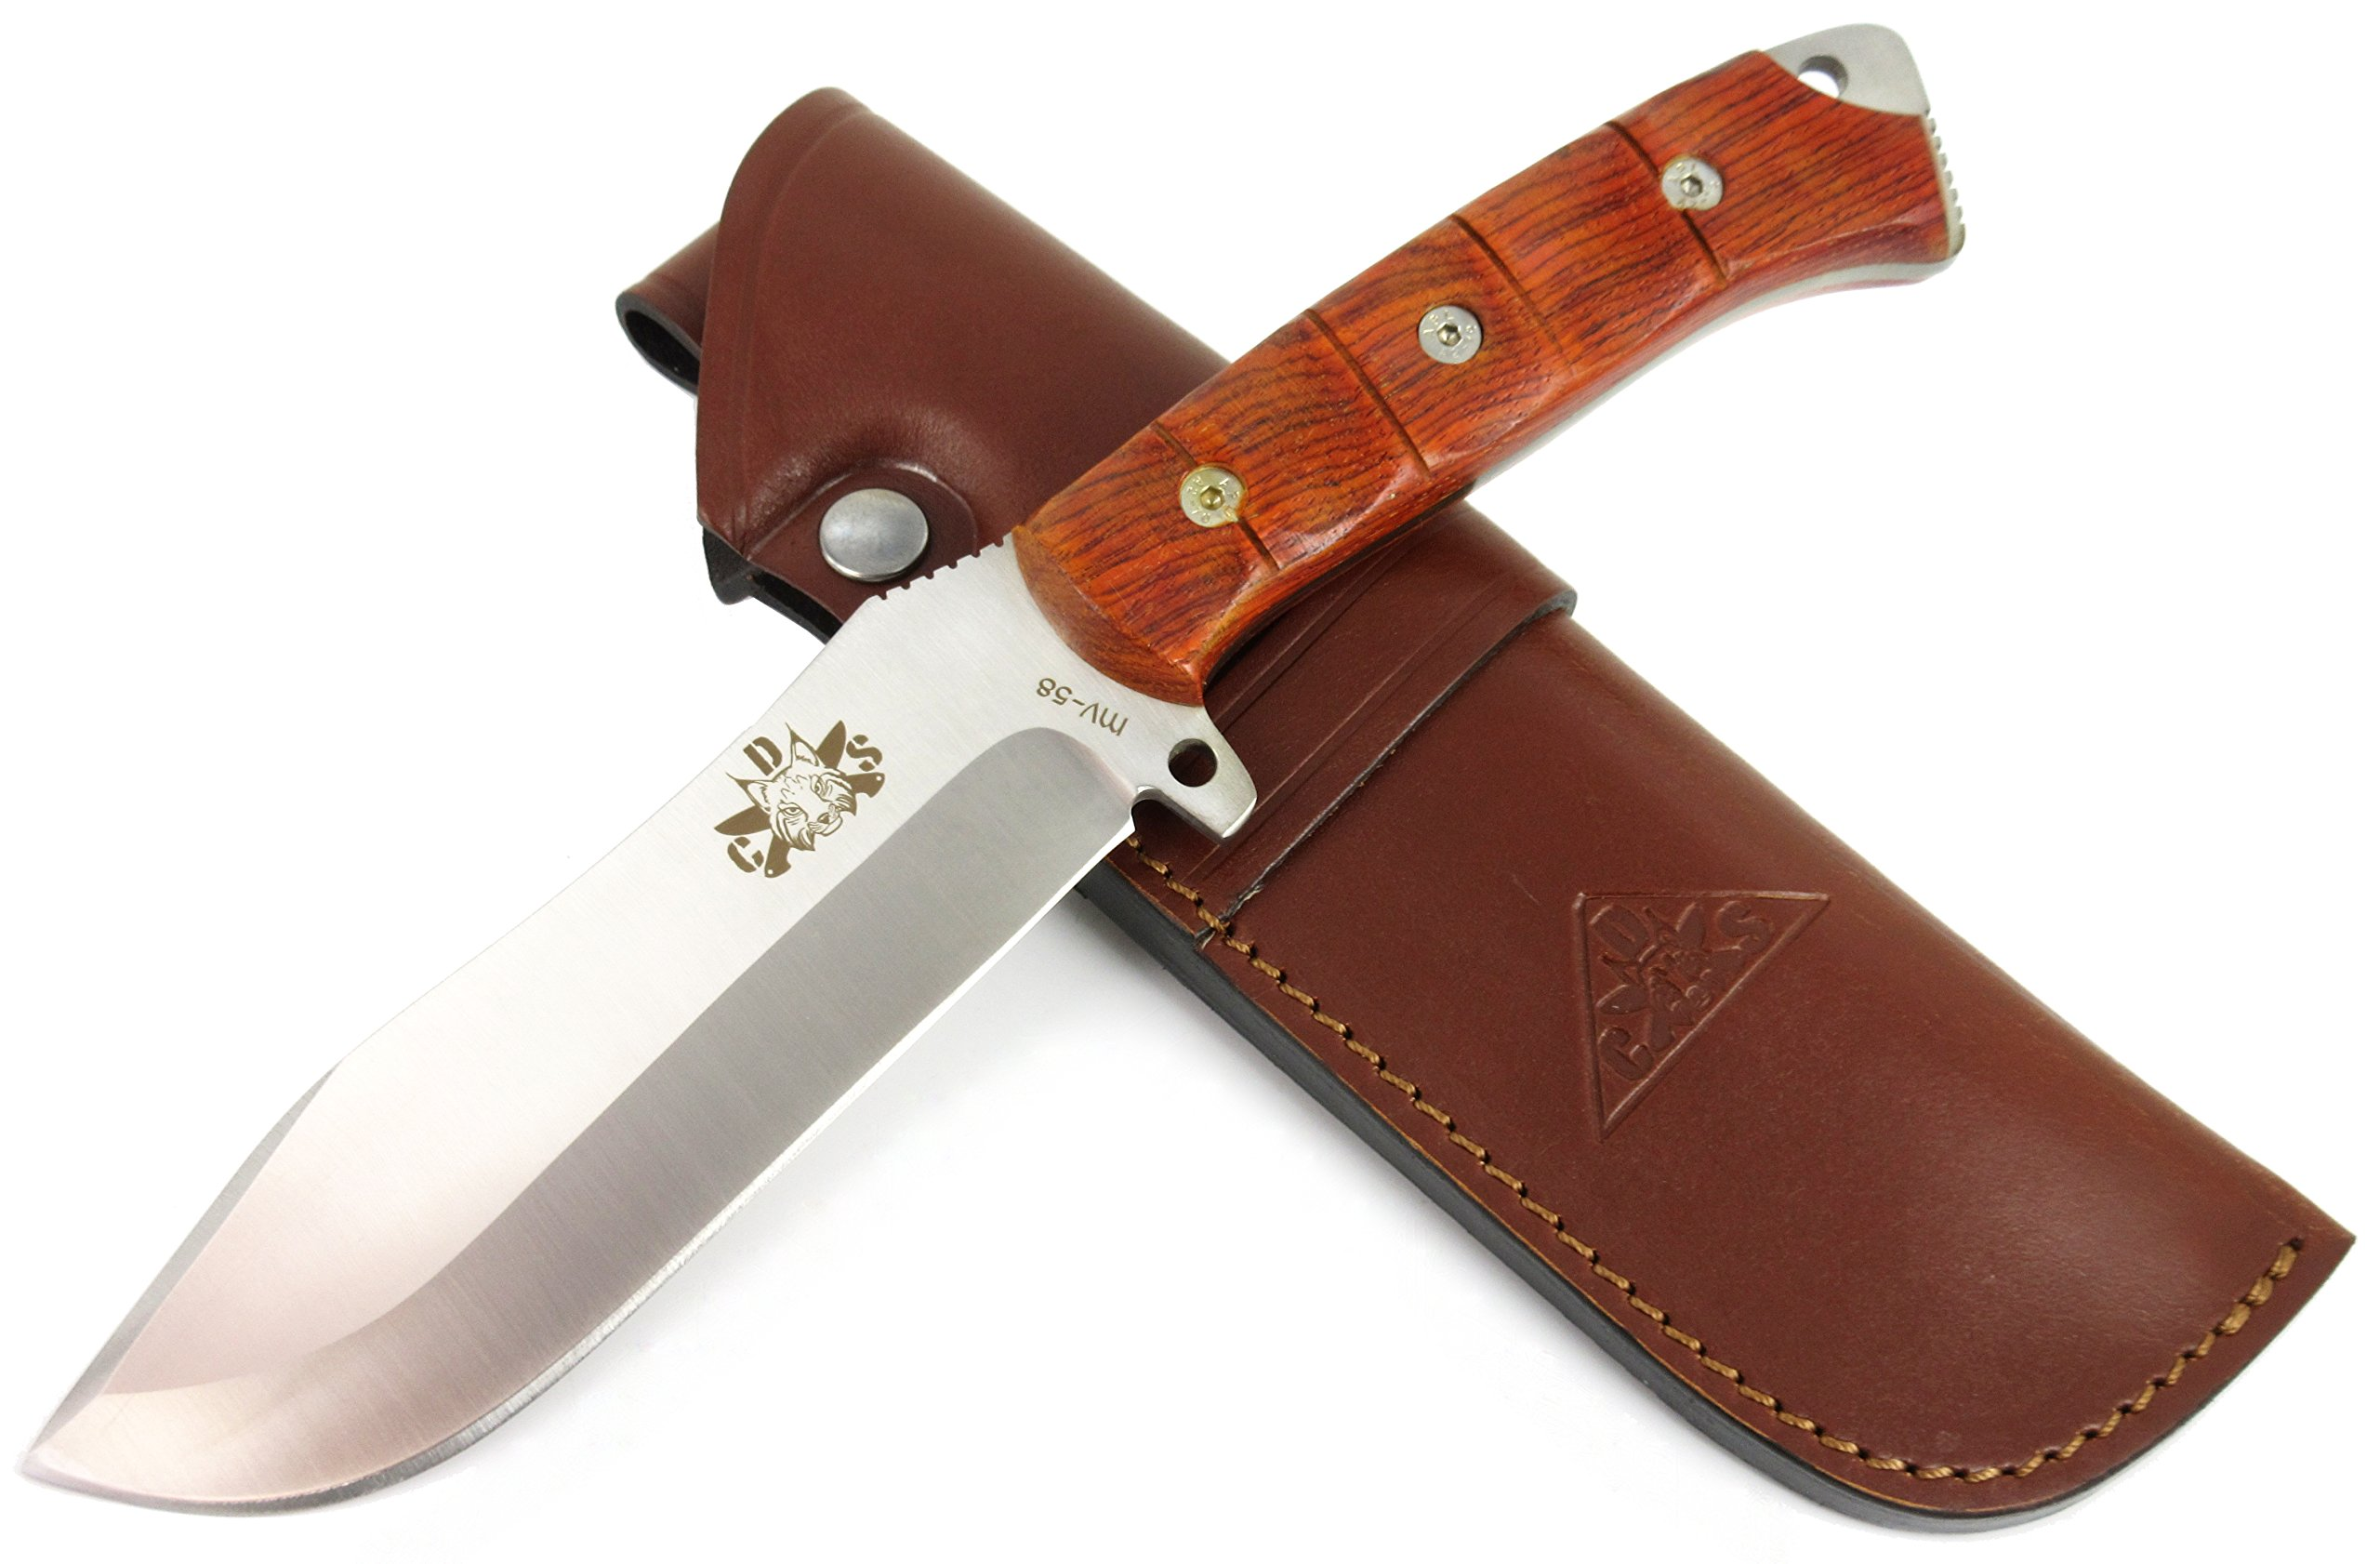 TARTESSUS ONE - Outdoor / Survival / Hunting / Tactical Knife - Cocobolo wood handle, Stainless Steel MOVA-58 - Genuine Leather Sheath. Made in Spain